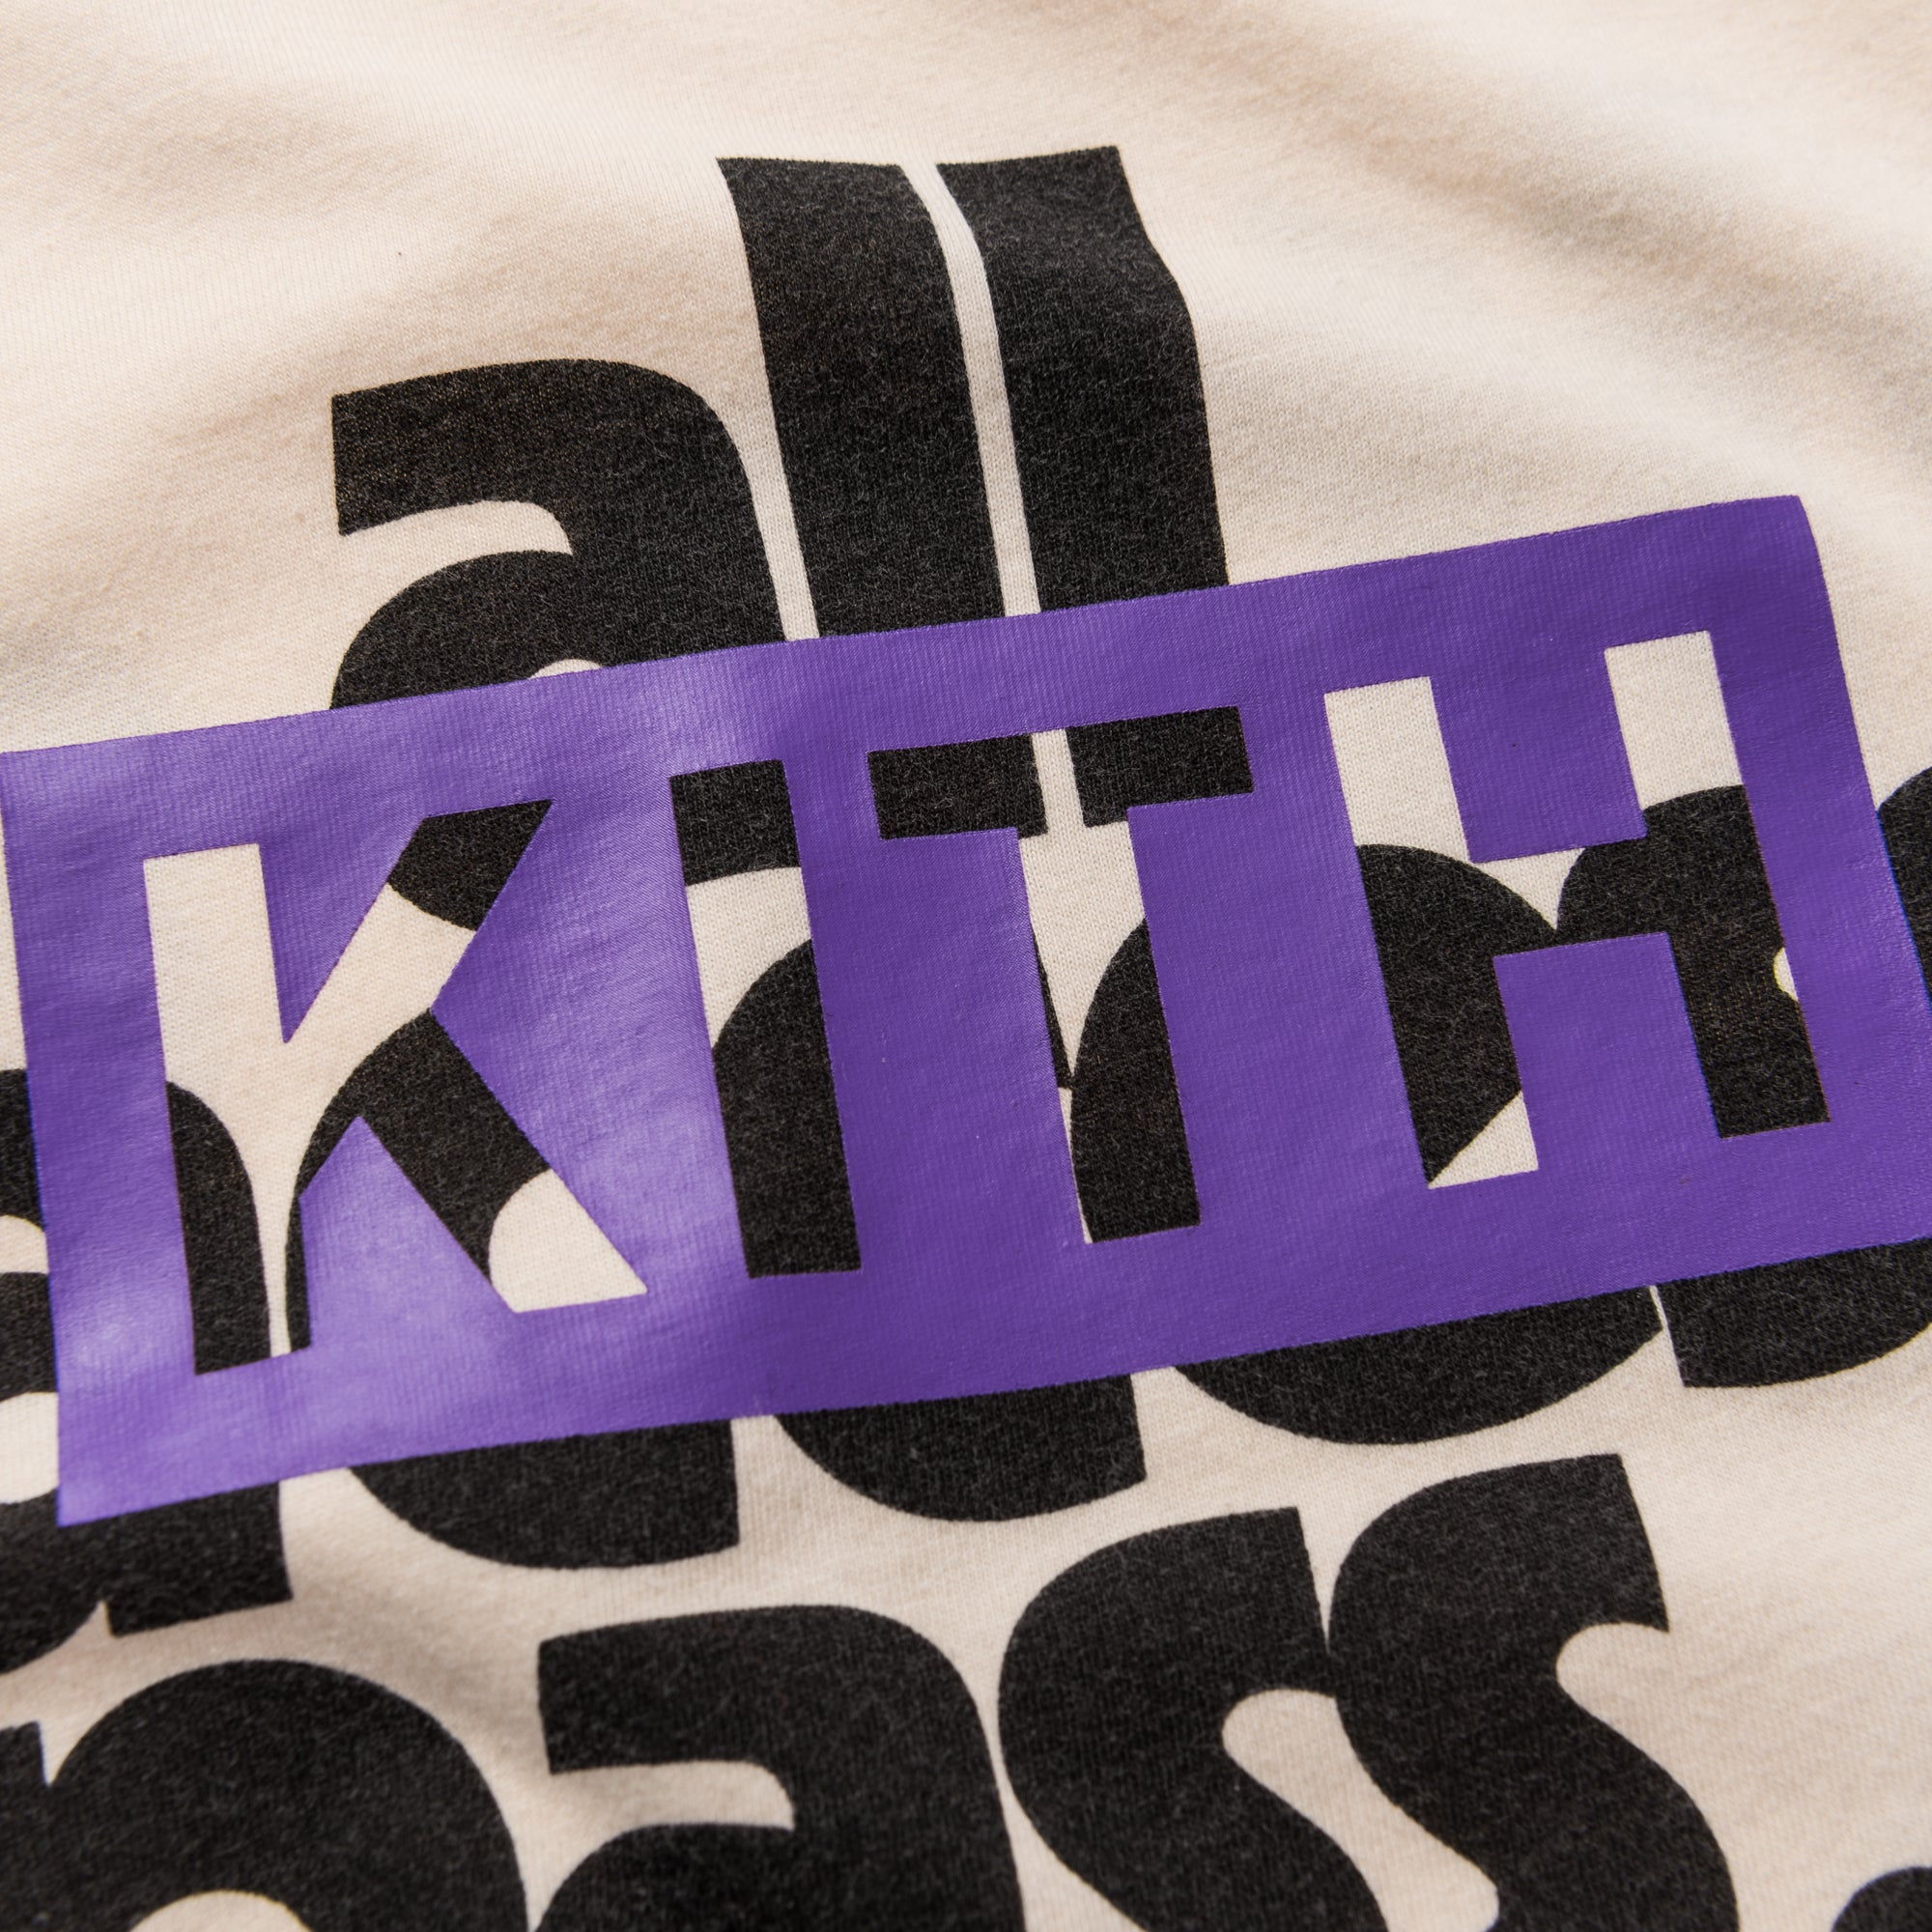 Kith All Access Pass Tee - Turtle Dove